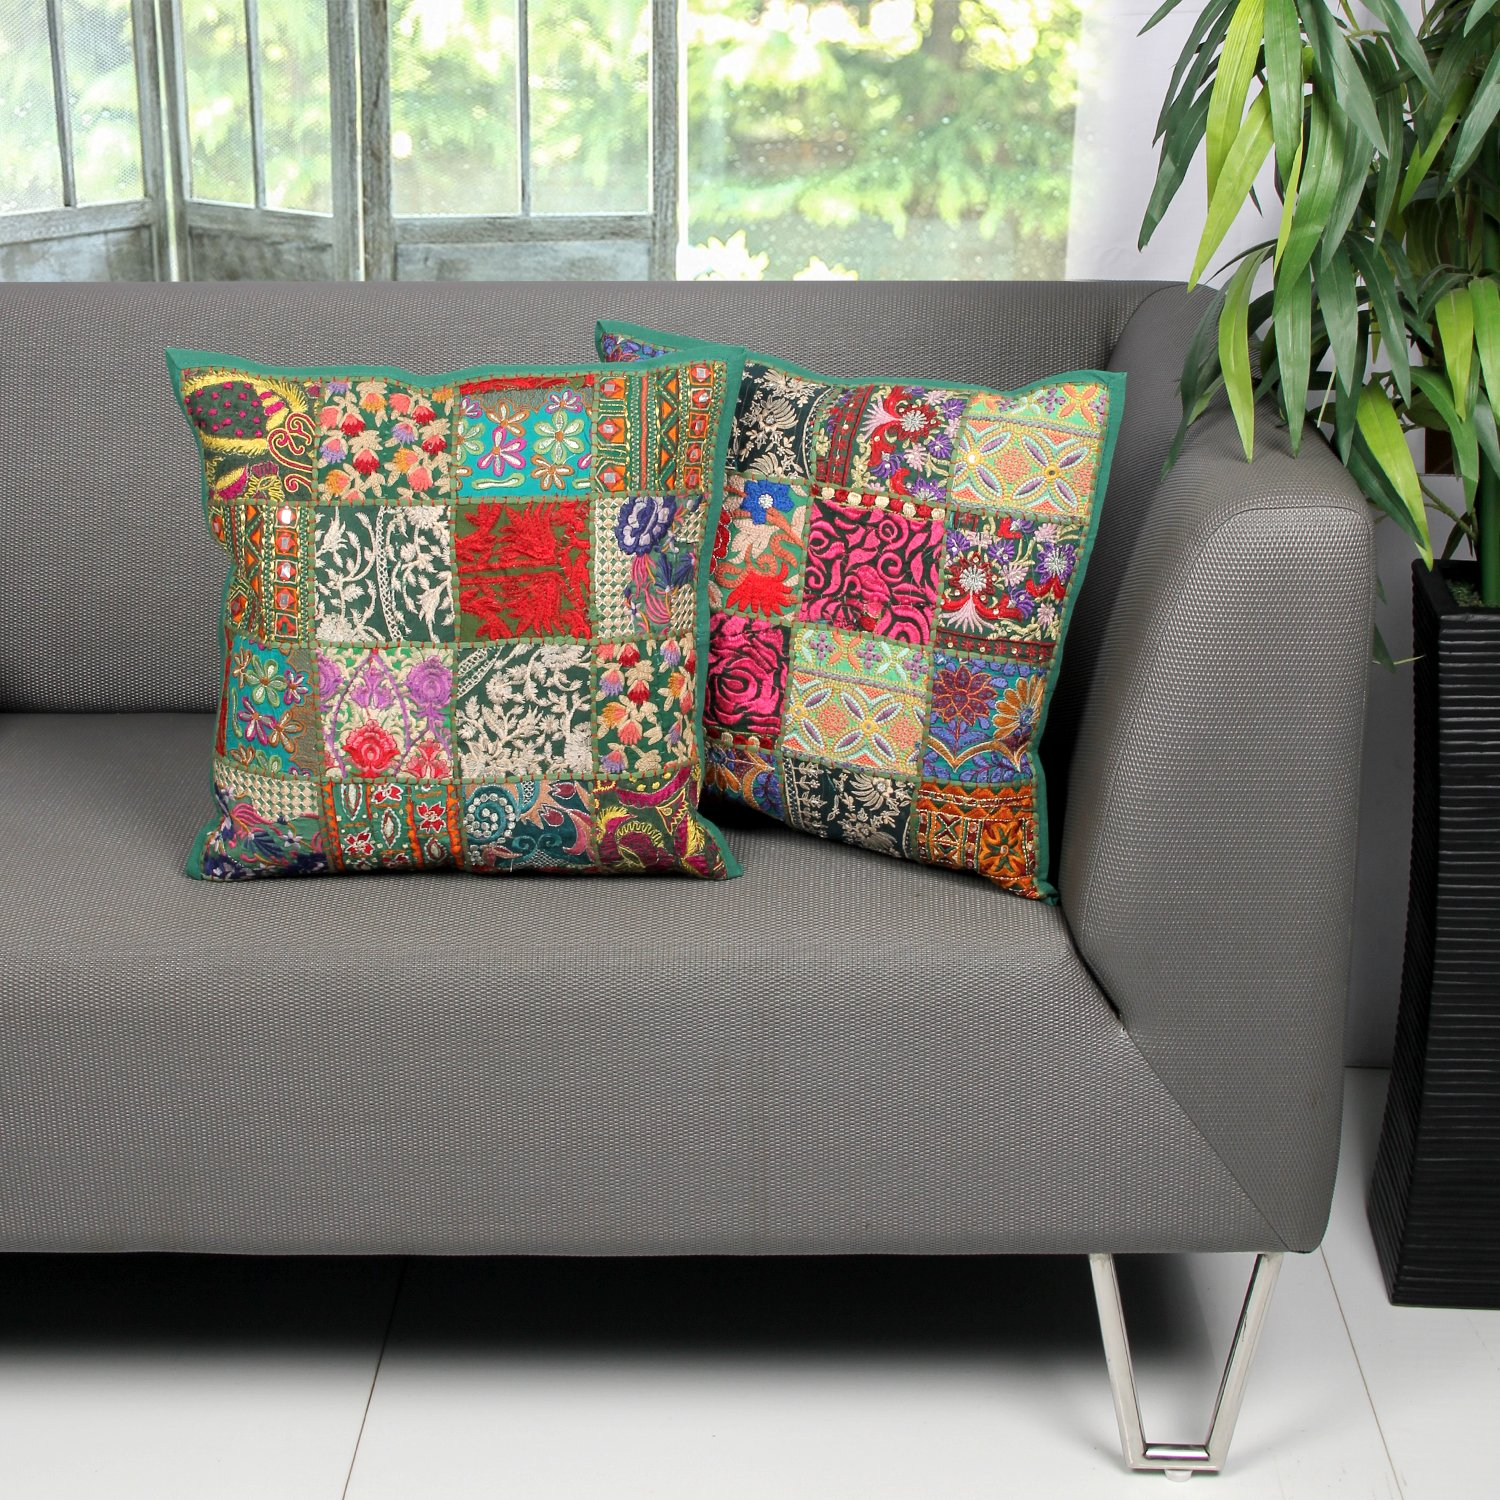 Set of 2 Green Indian Traditional Designer Throw Pillow Cases Embroidery Sequin Patchwork Cushion Covers for Sofa Home Bed Decor - Aheli